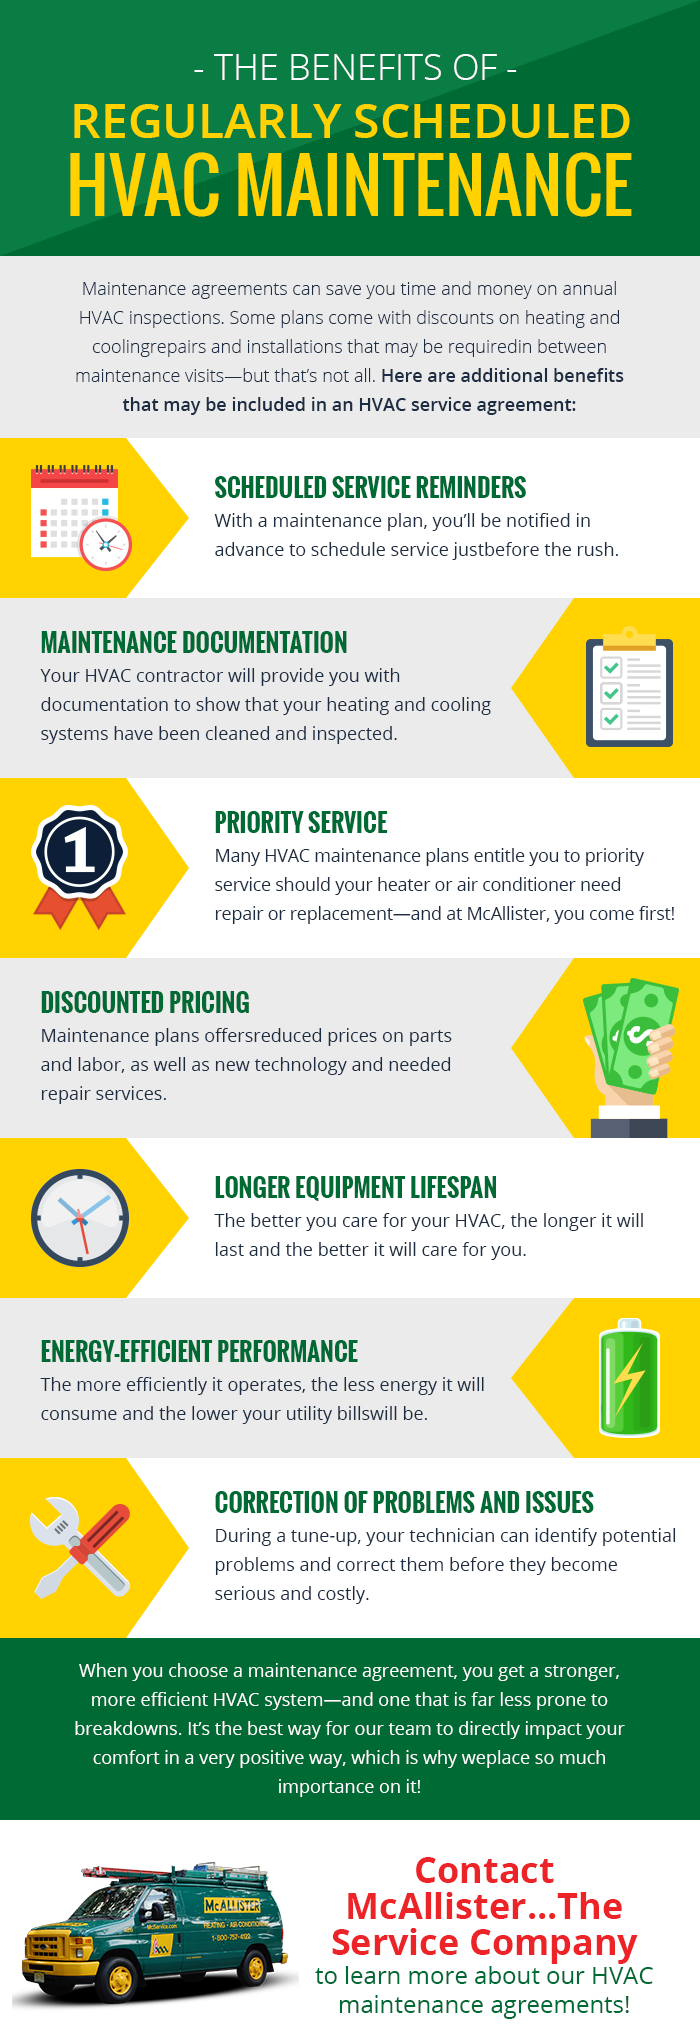 Benefits of HVAC Maintenance in South Jersey